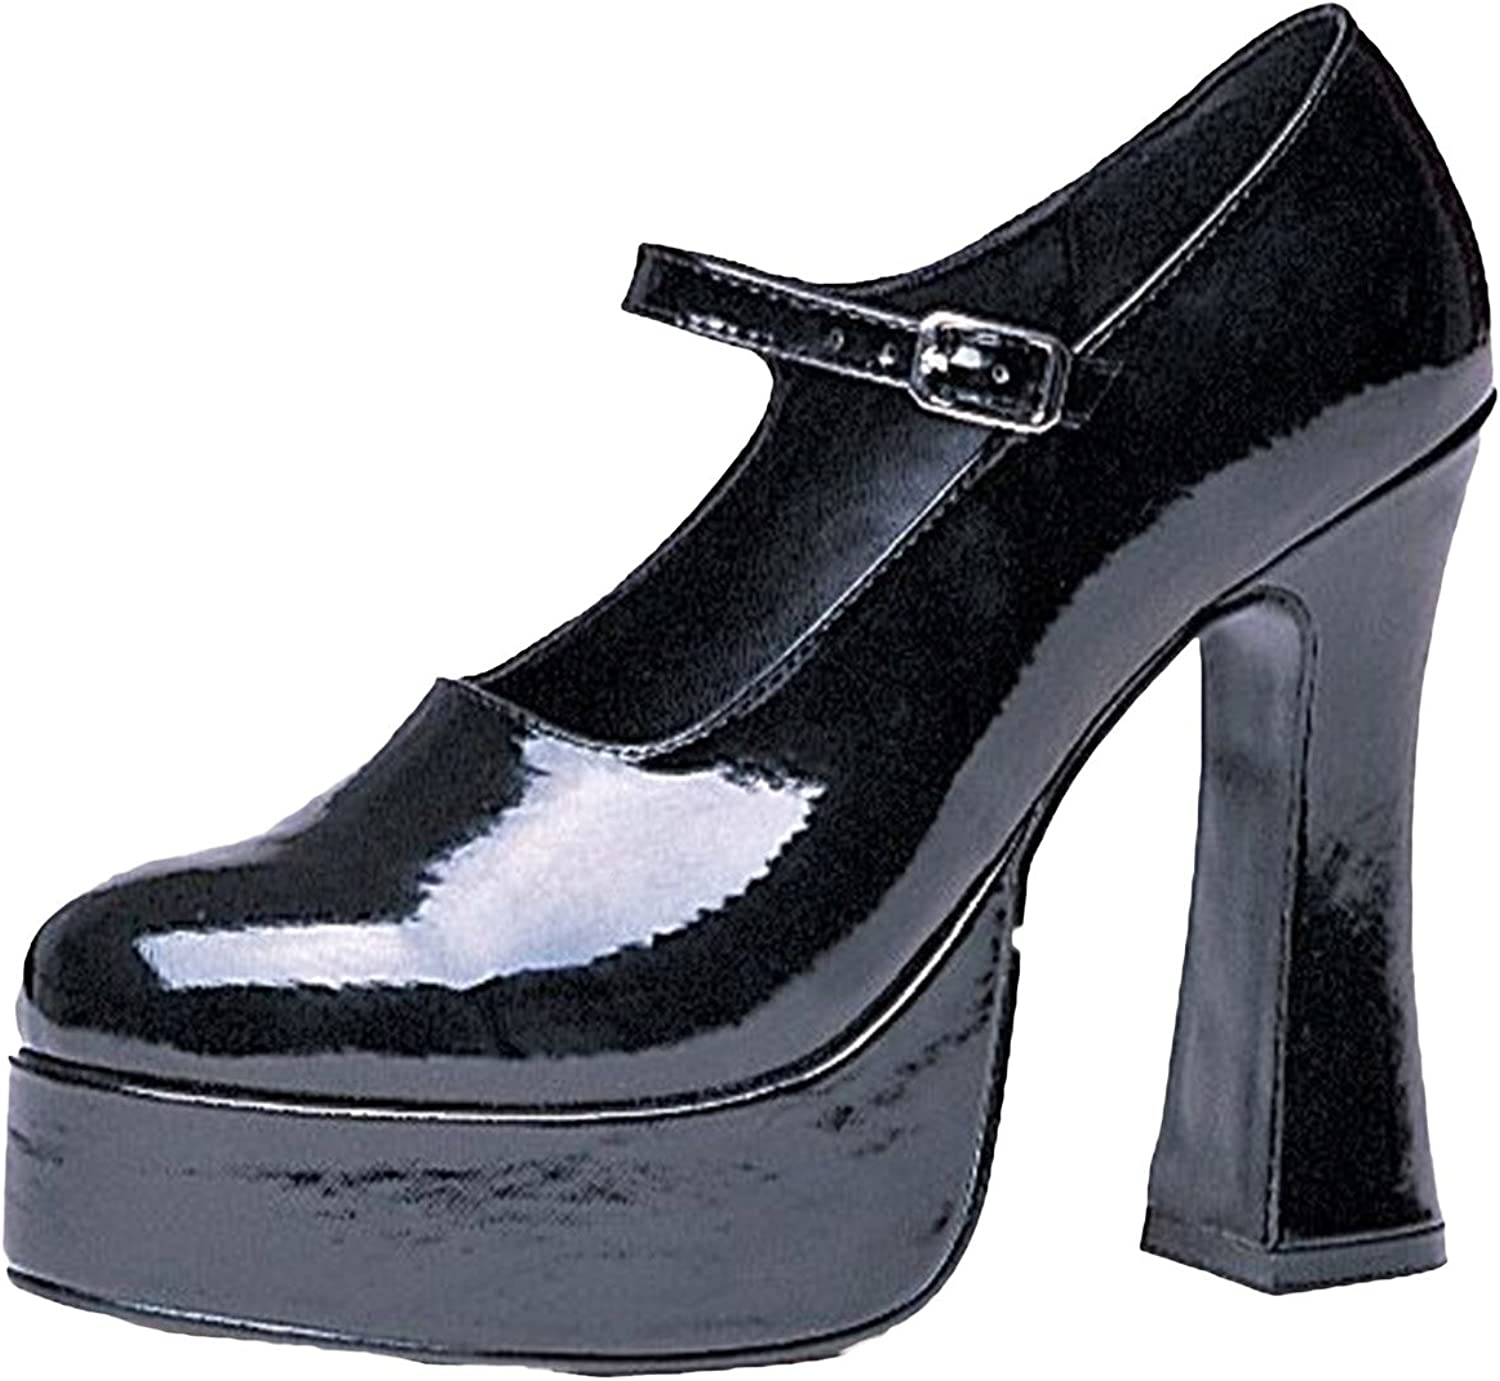 Women's Black Patent Mary Jane shoes